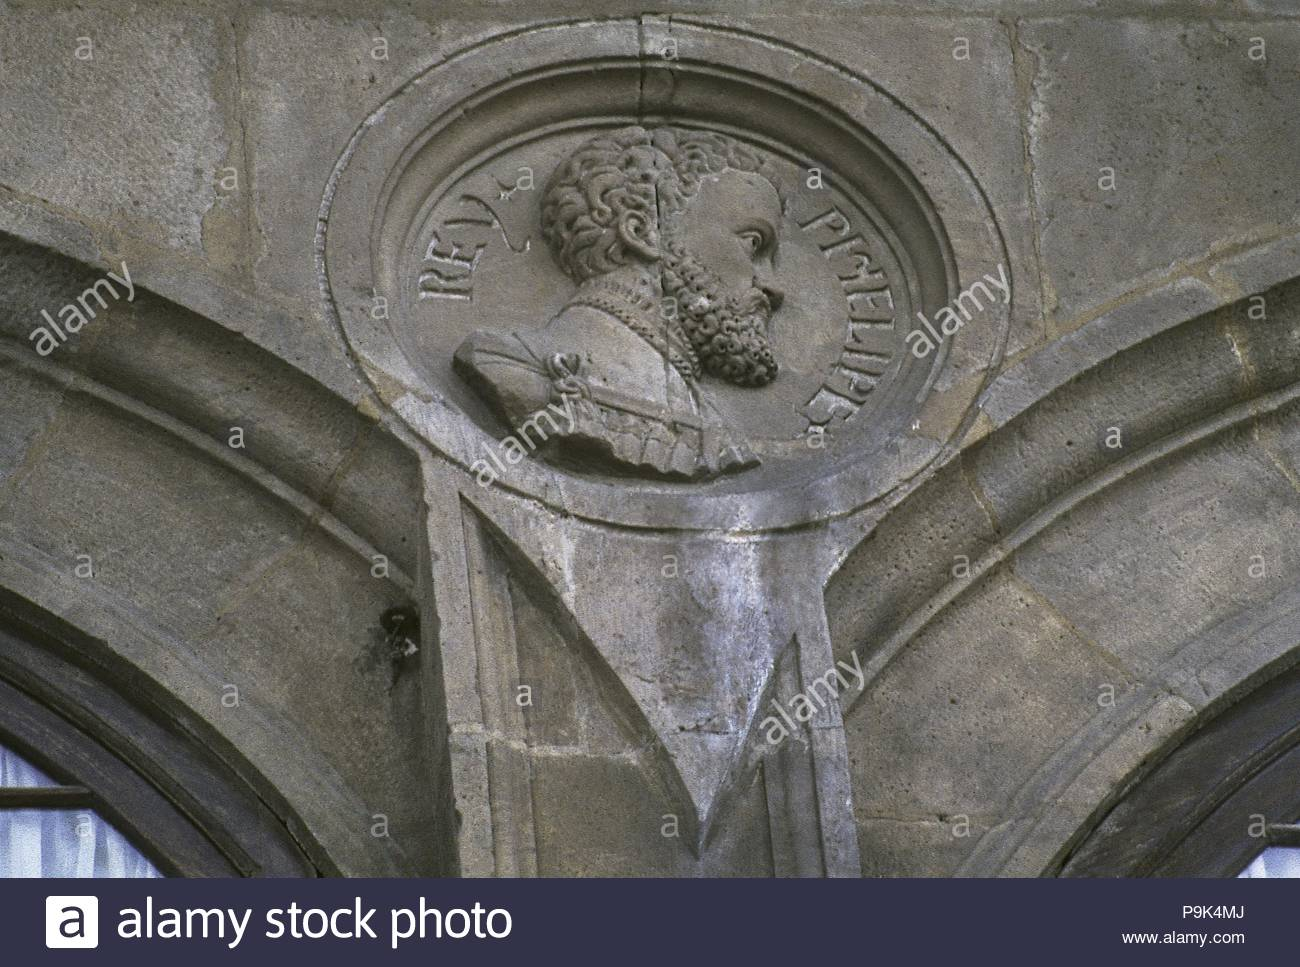 Philip II of Spain (Valladolid, 1527-El Escorial, 1598). King of Spain (1556-1598) and Portugal (1580-1598) as Philip I. Called 'the Prudent'. Medallion with the effigy of the king on the facade of the Town Hall of Santa Cruz de la Palma, 16th century. Province of Santa Cruz de Tenerife, Canary Islands, Spain. - Stock Image